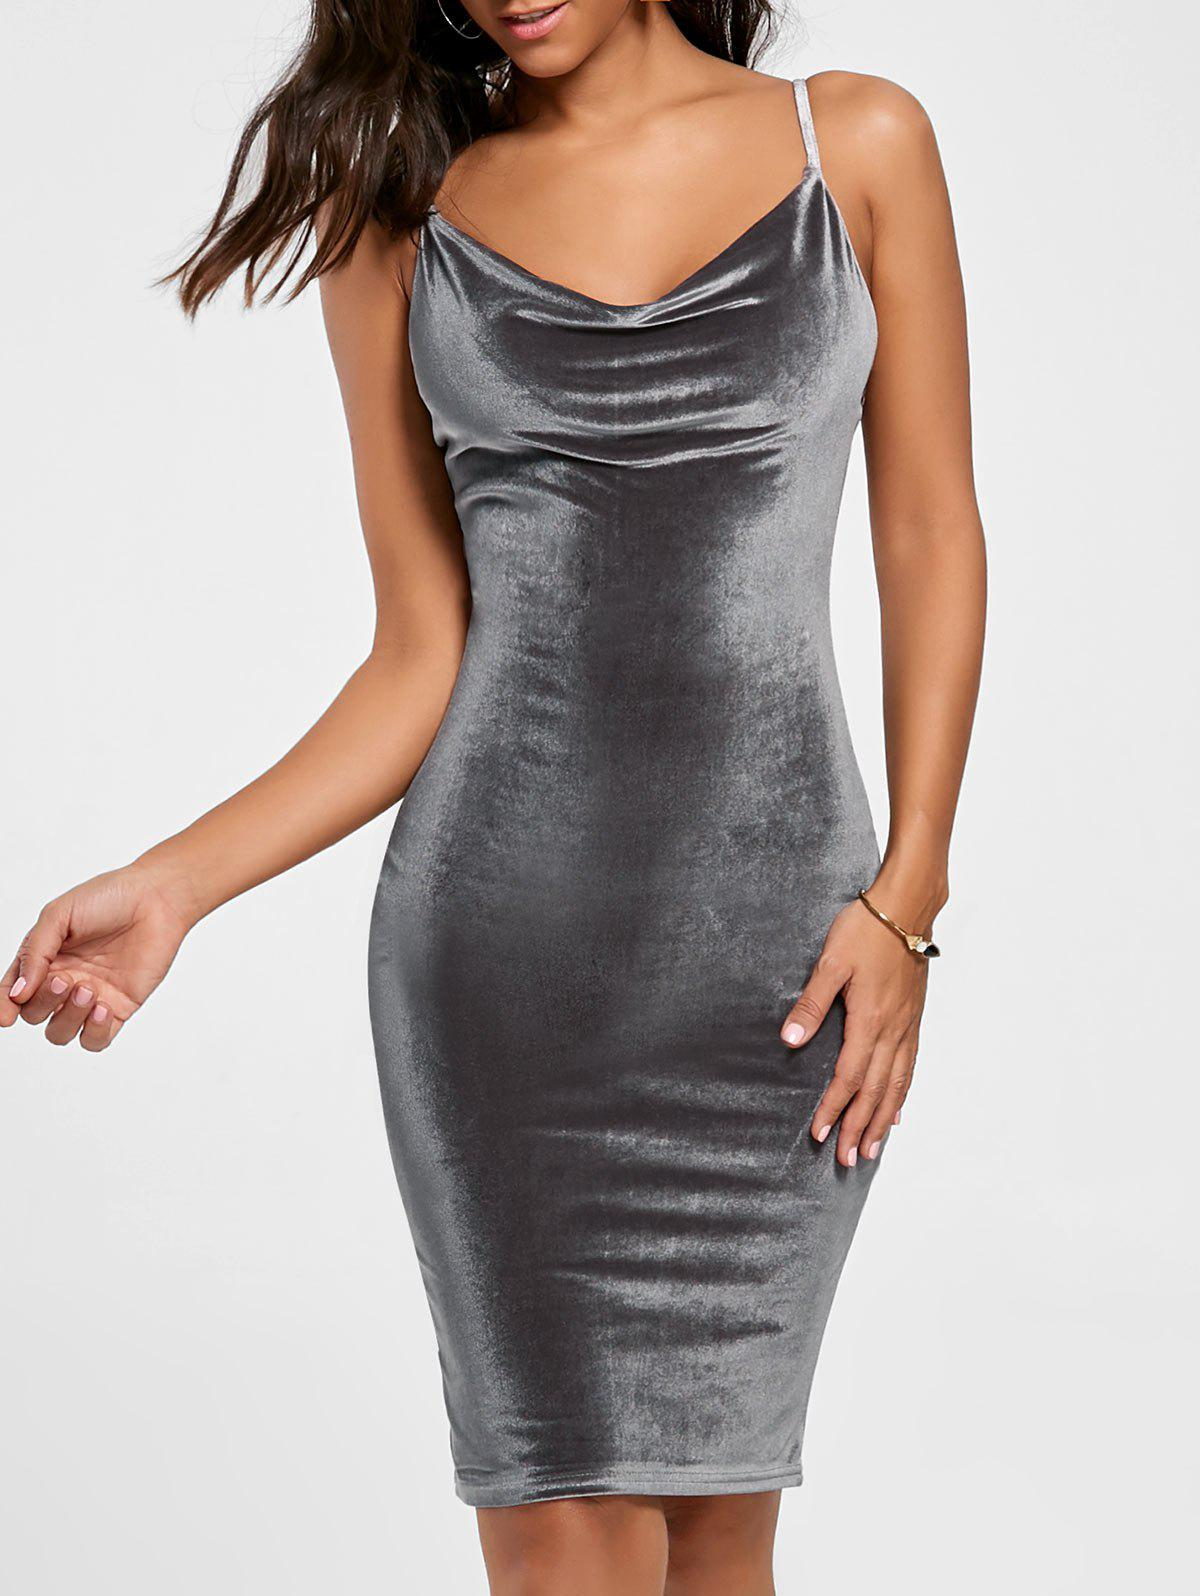 Spaghetti Strap Cut Out Fitted Velvet Bodycon Dress